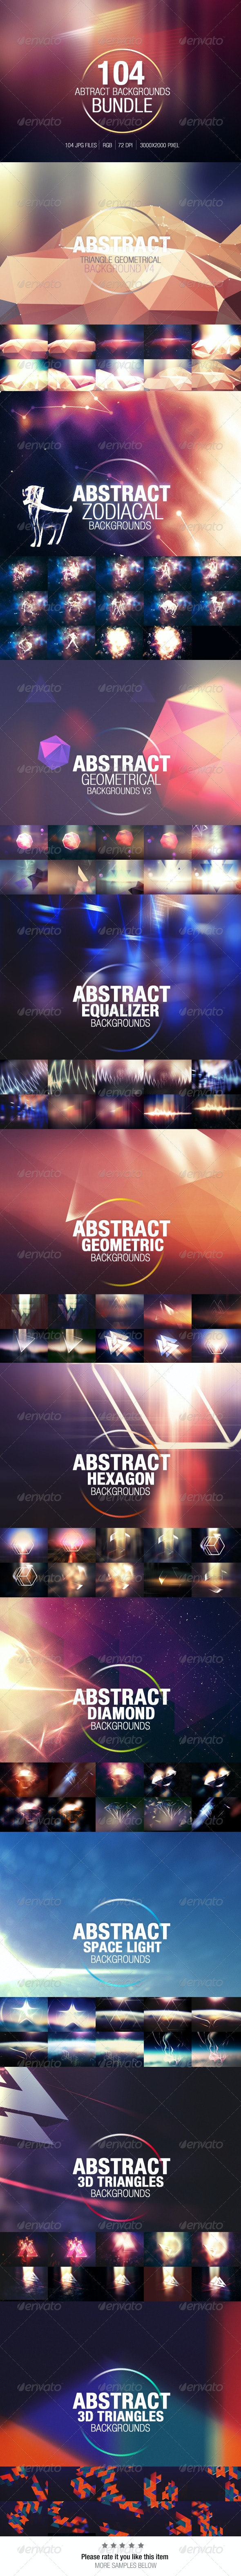 104 Abstract Backgrounds Bundle